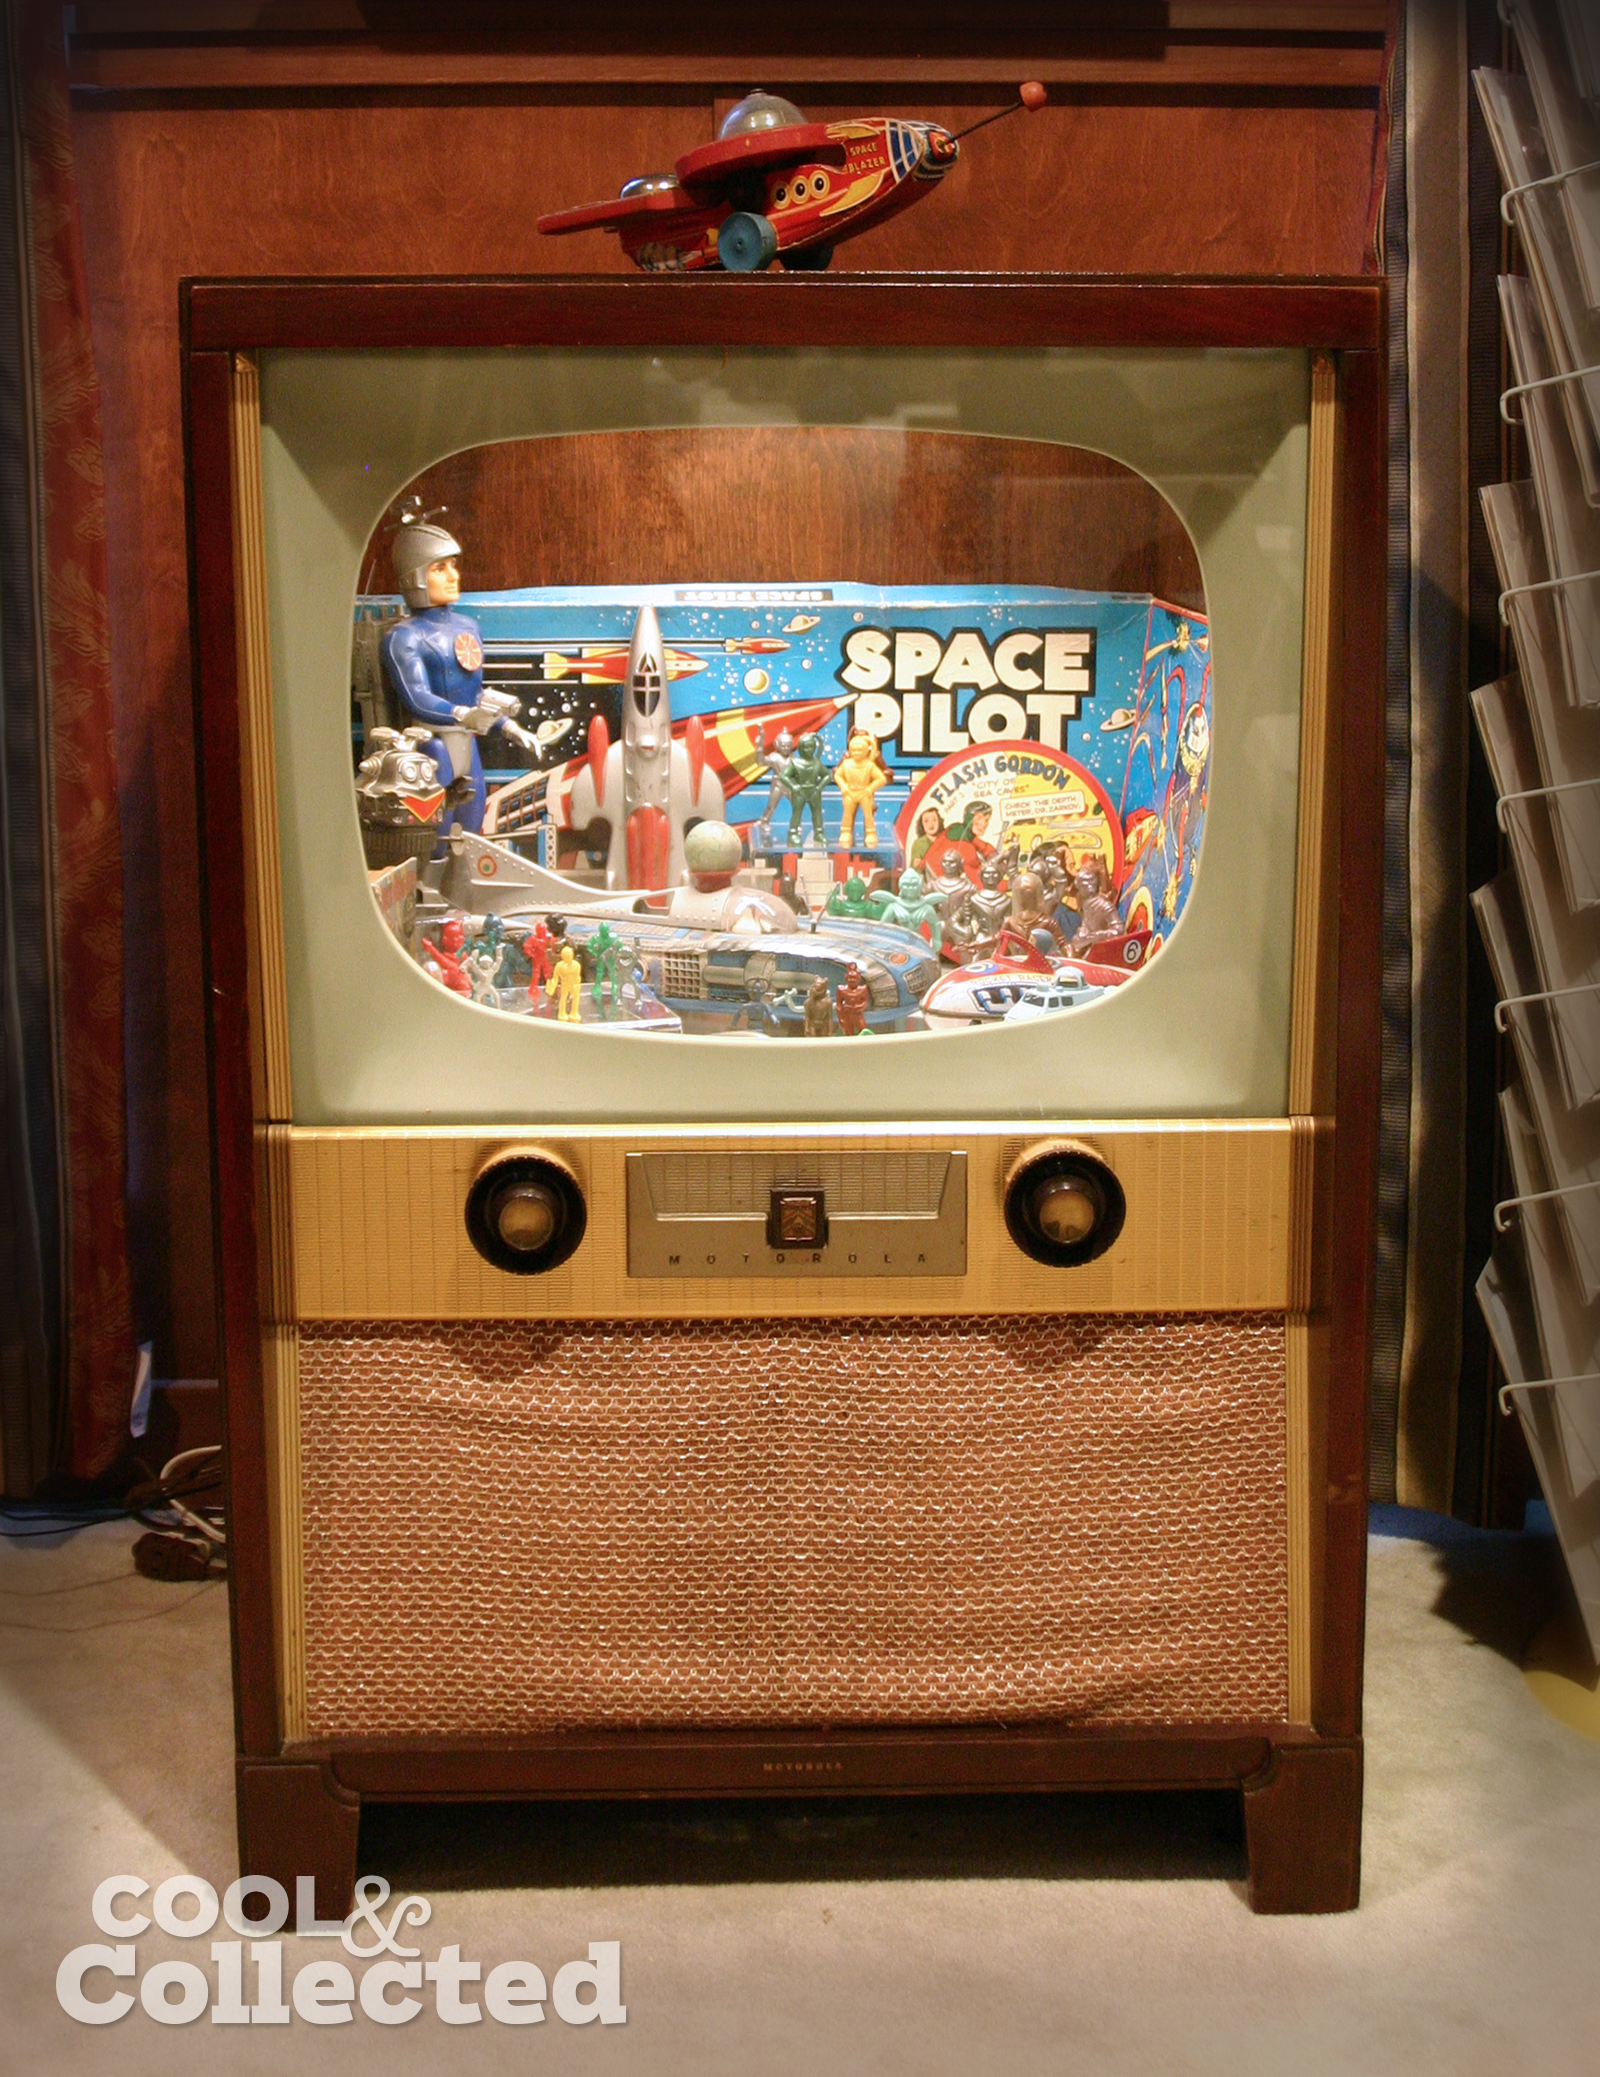 Vintage space toys on display in a converted vintage television console